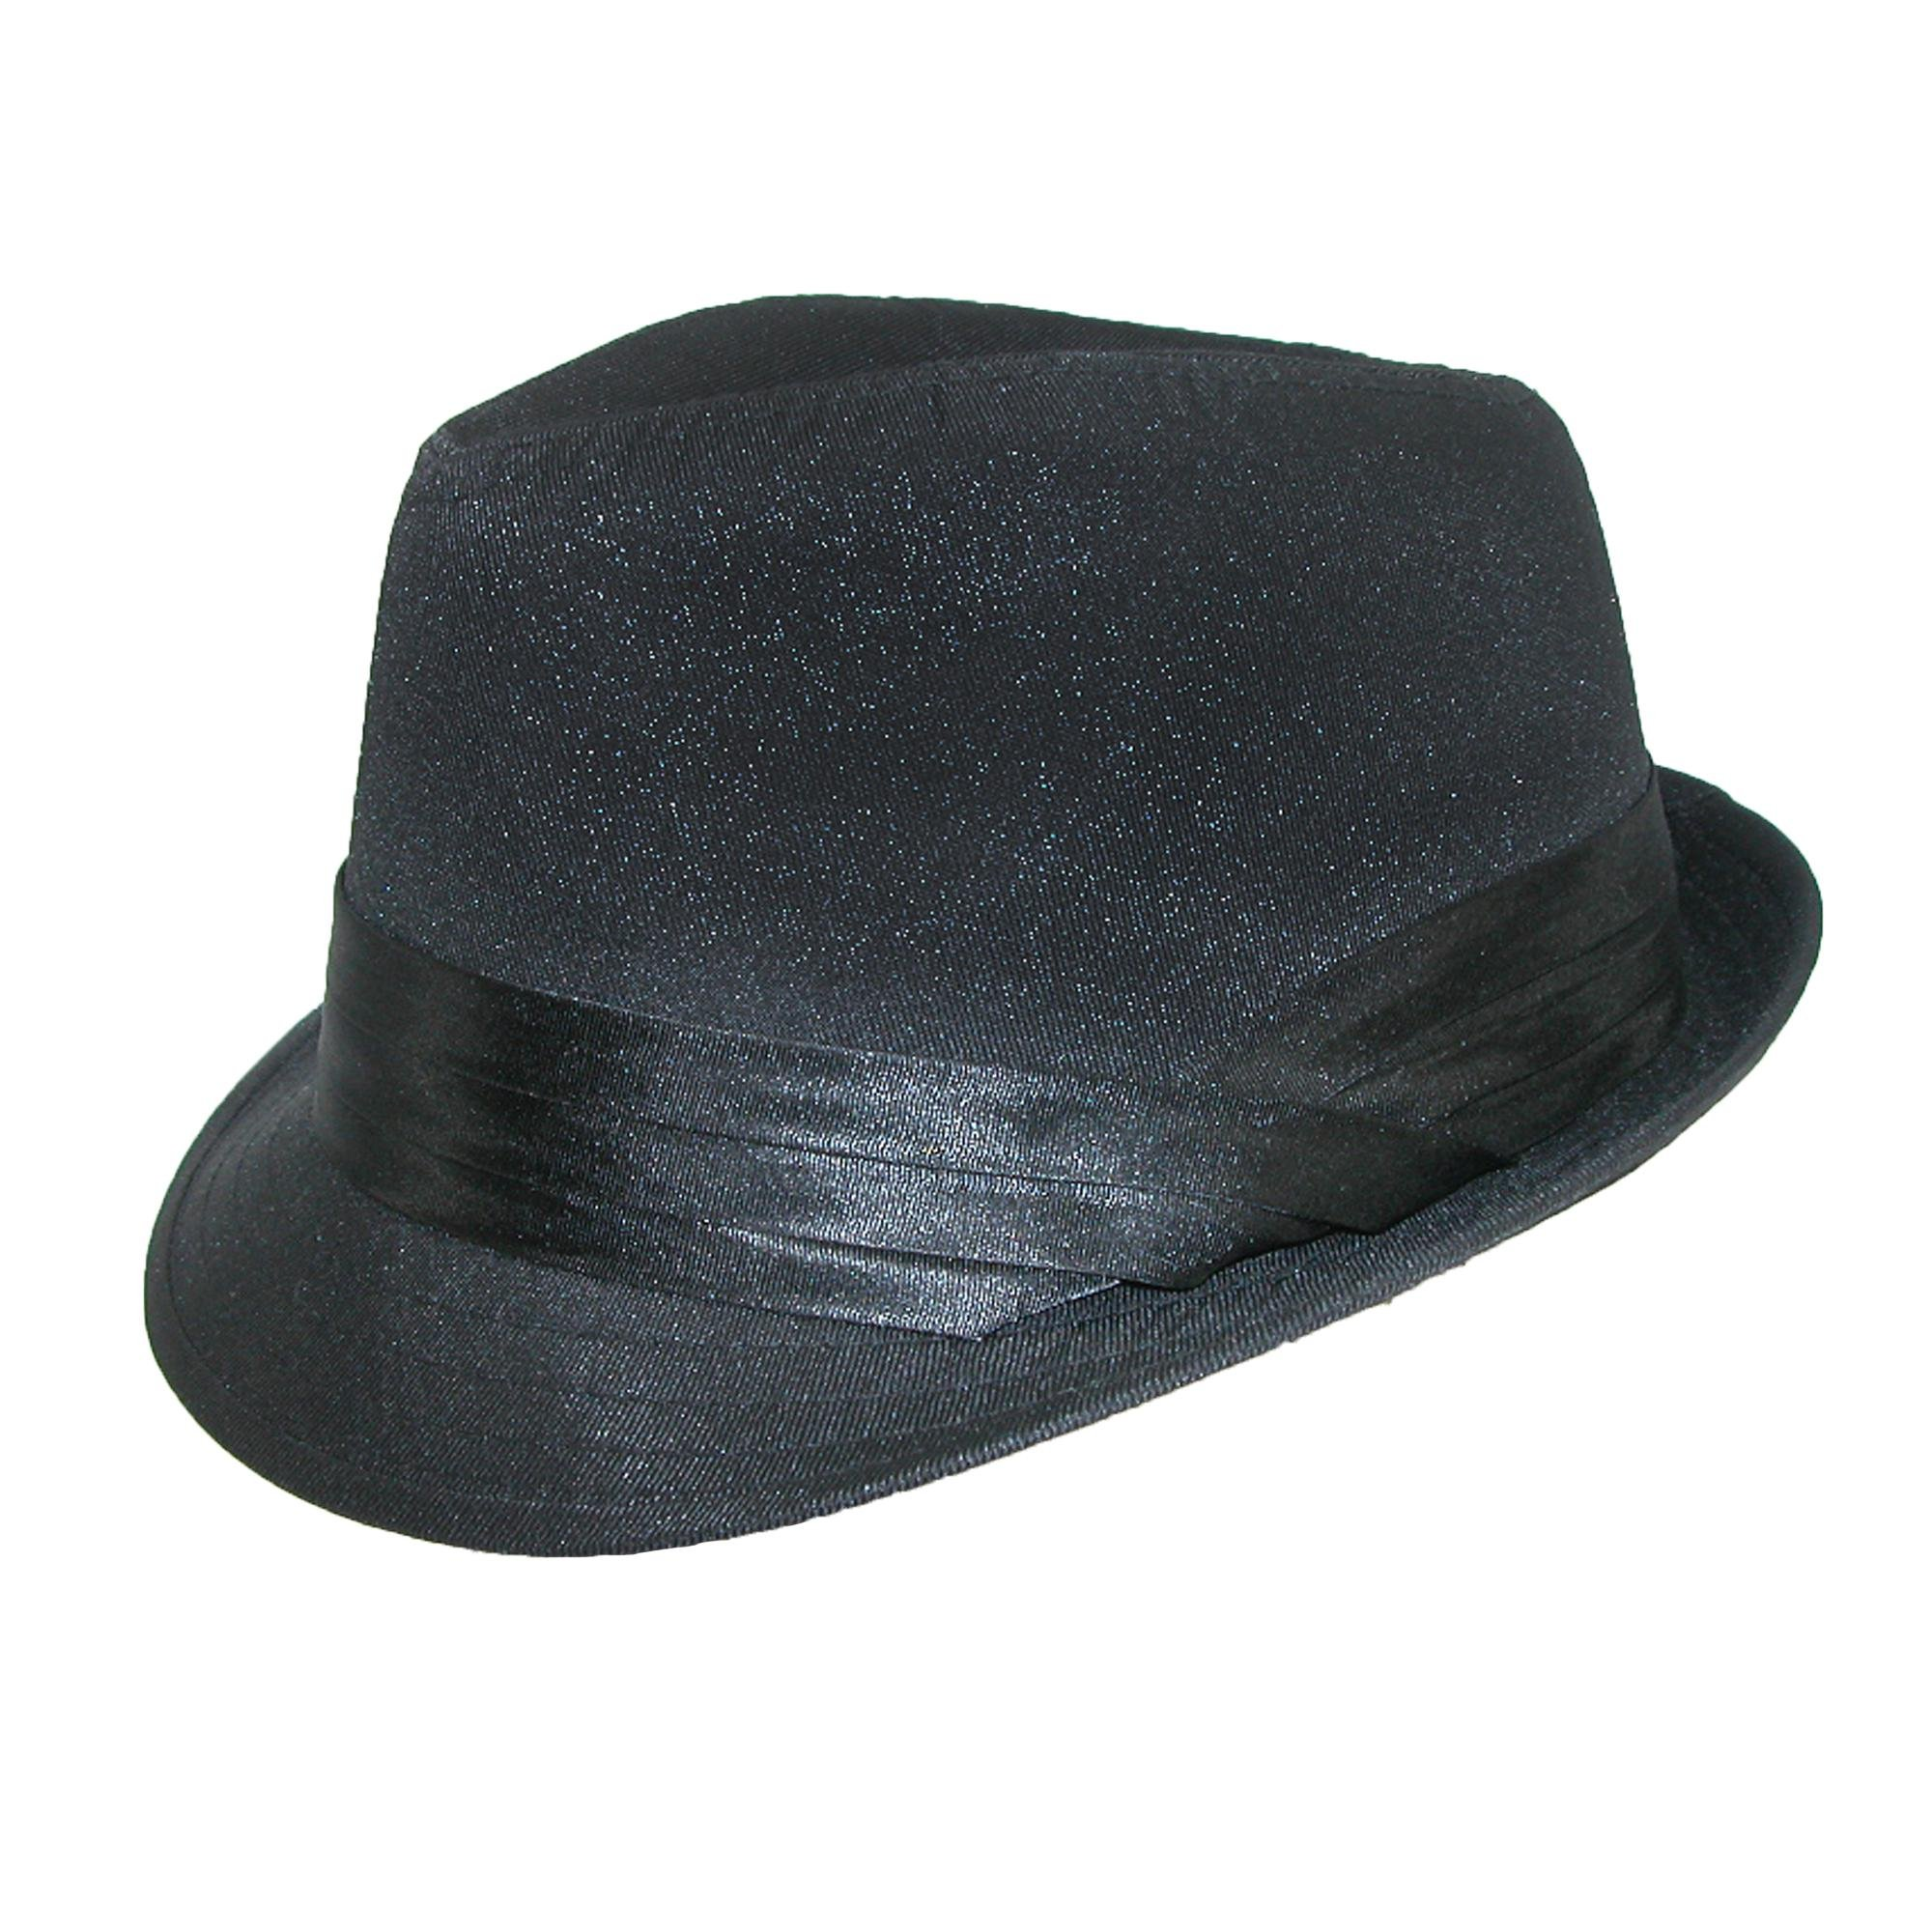 Kenny K Men's Wedding Dress Formal Fedora Hat, Large, Black on Black